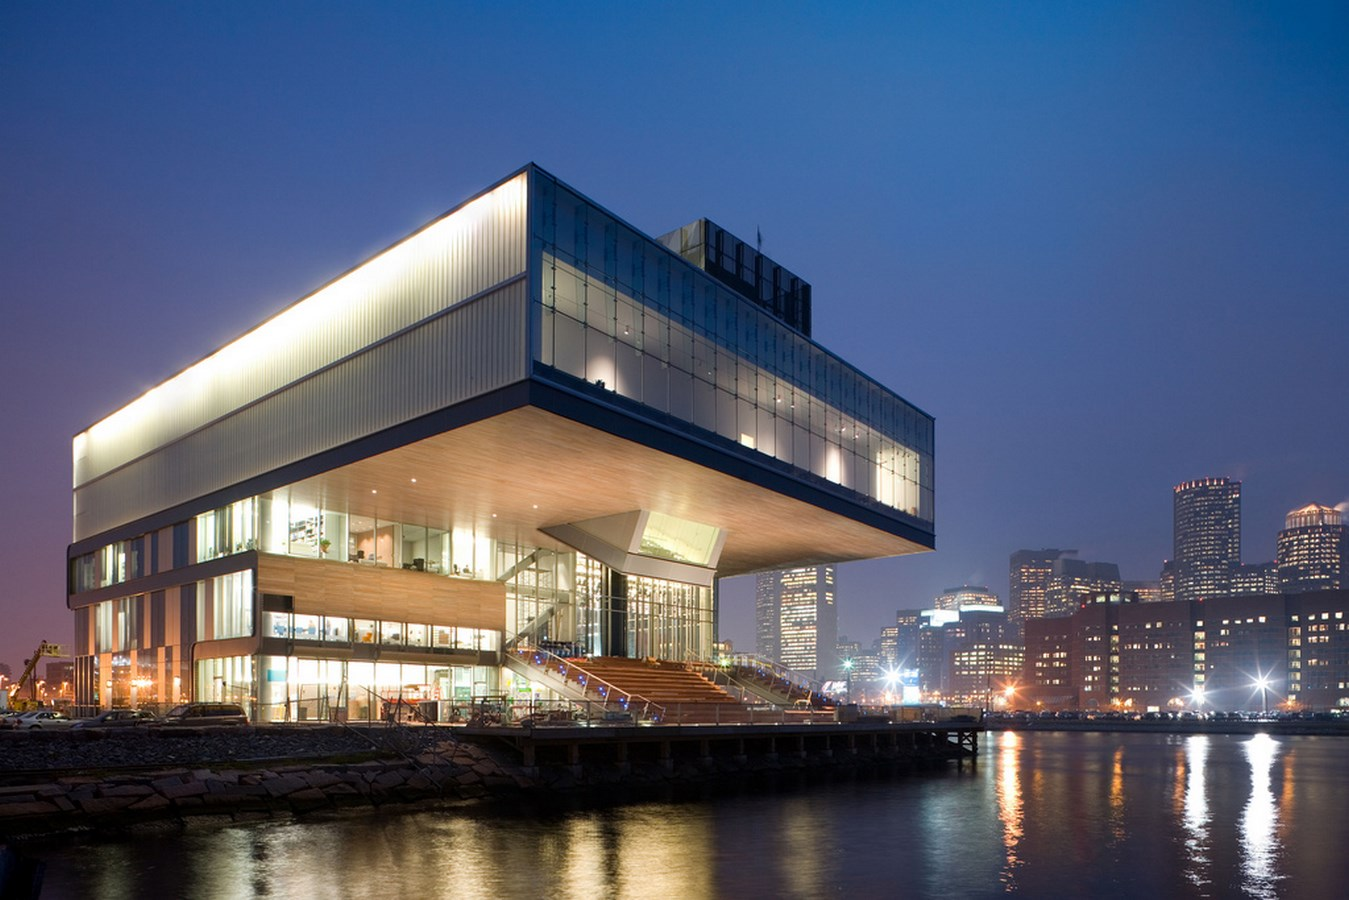 25 Most Iconic Structures In Boston - INSTITUTE OF CONTEMPORARY ART